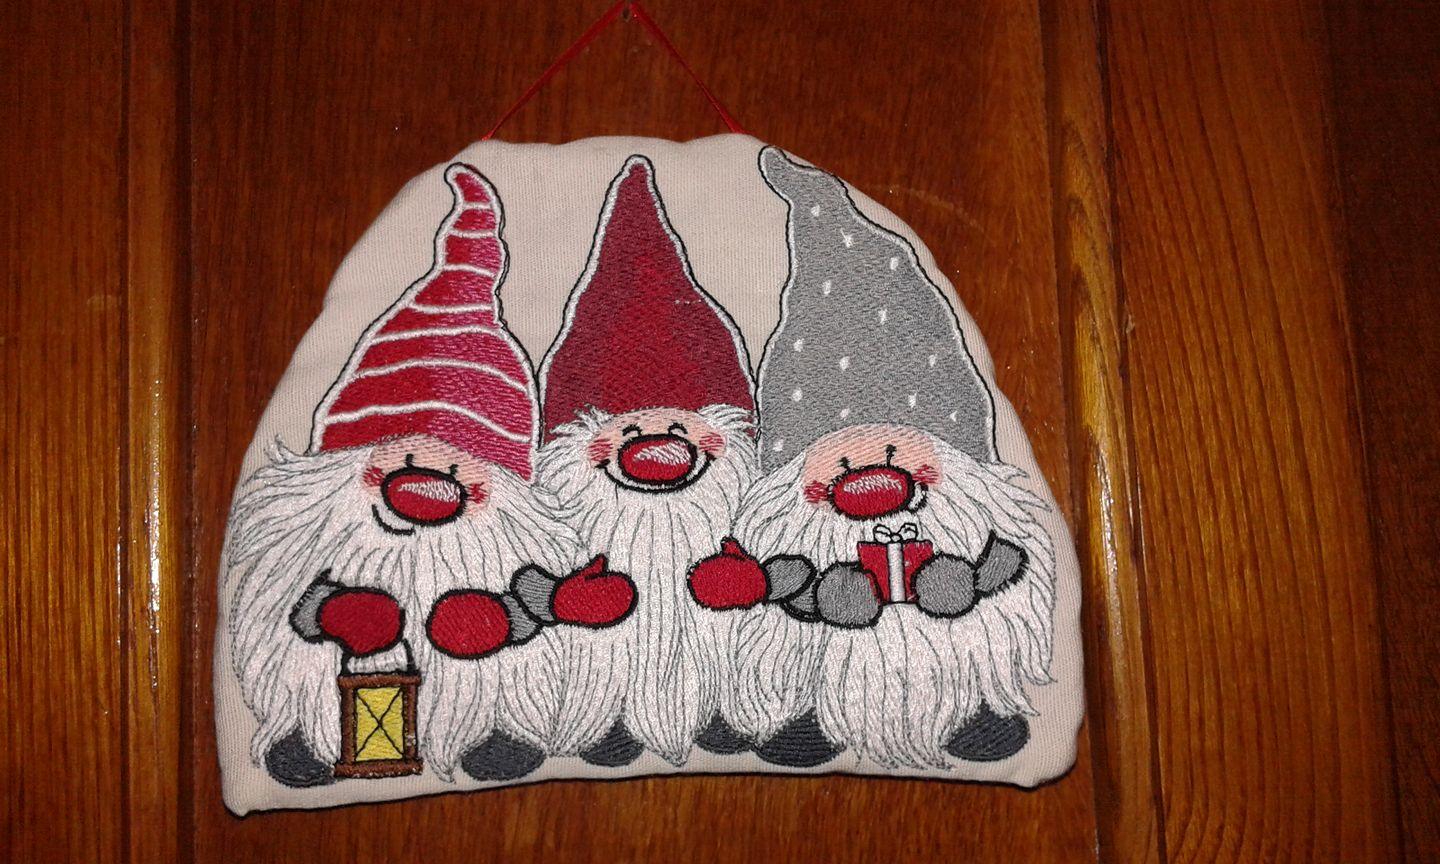 Dwarves design embroidered design